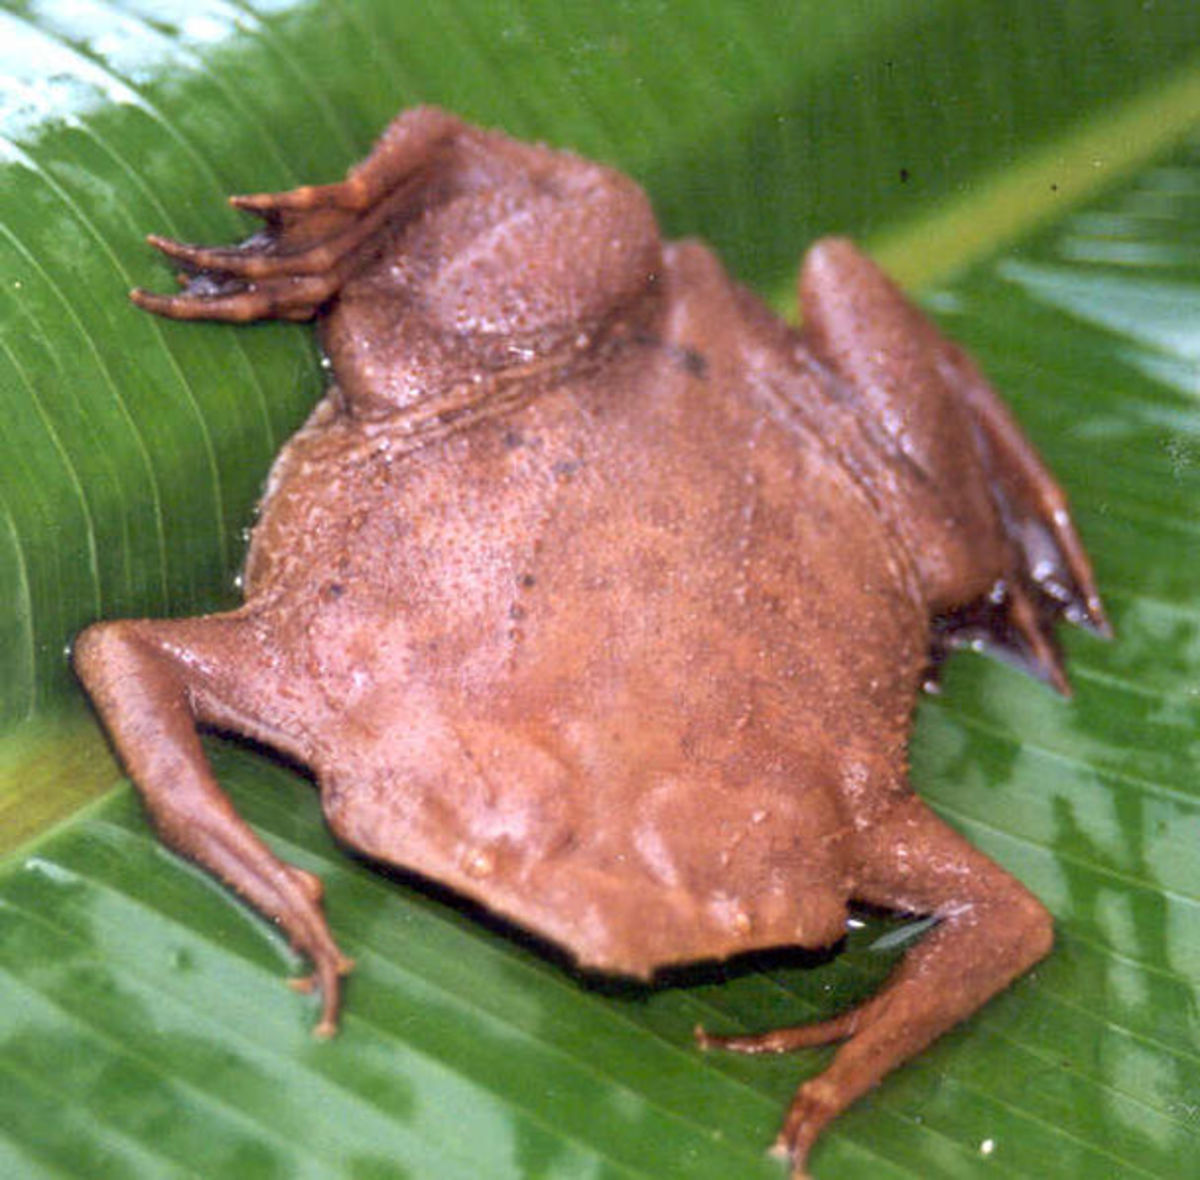 The Surinam toad must be the most bizarre looking amphibian ever!